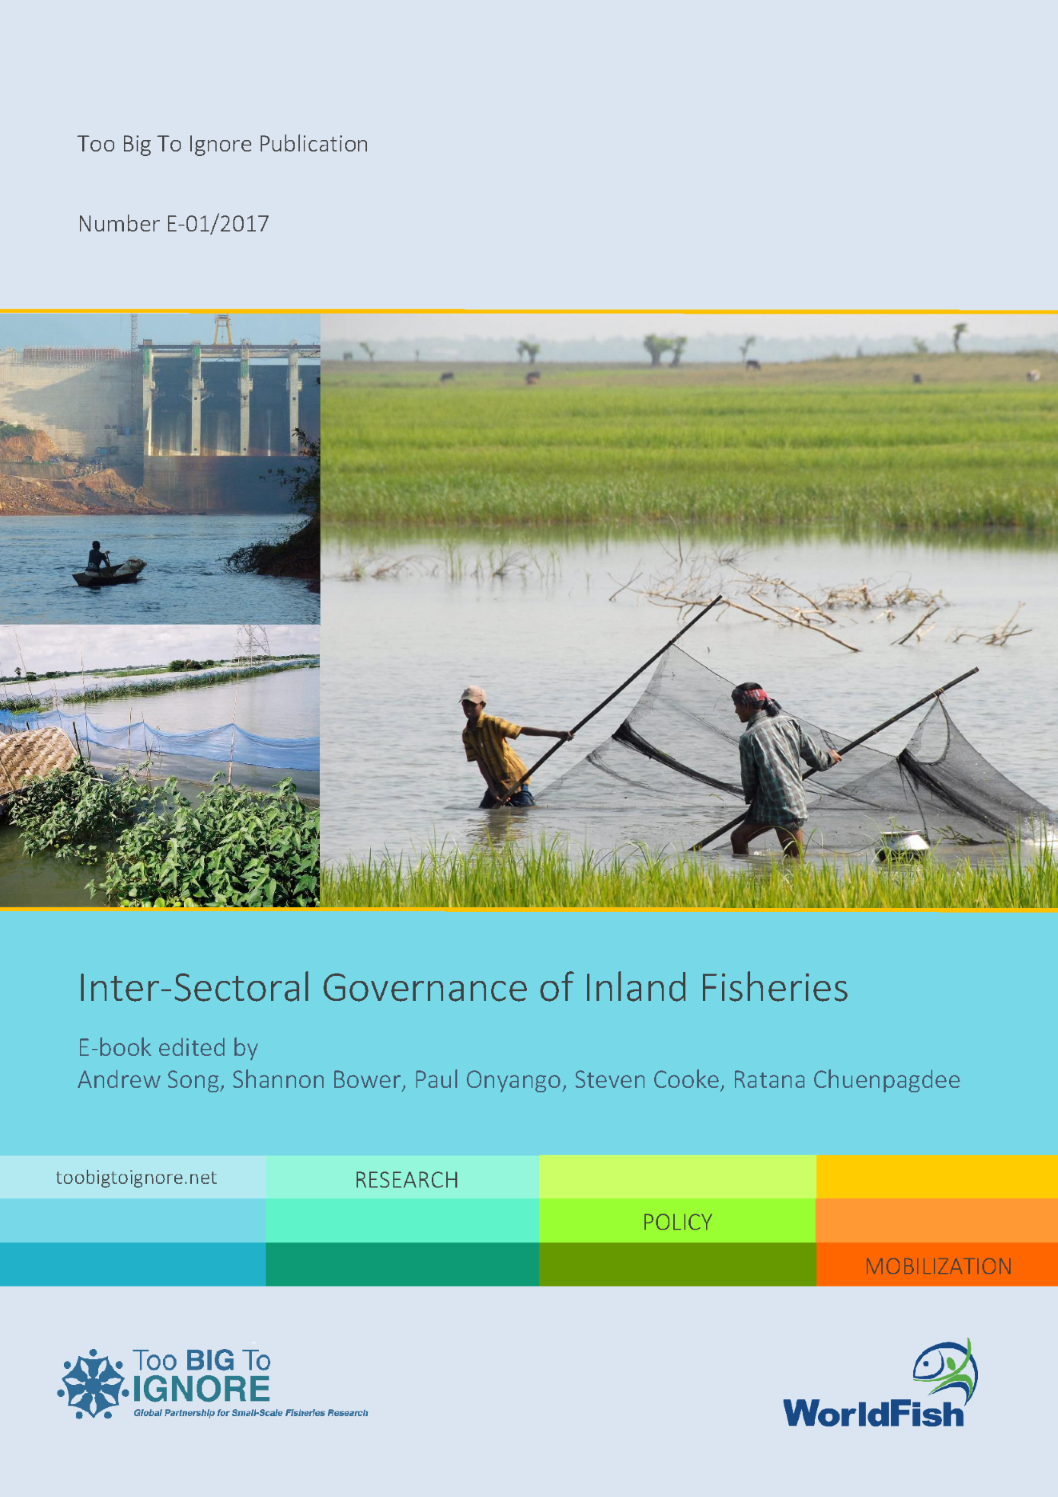 TBTI e-book on inland fisheries launched